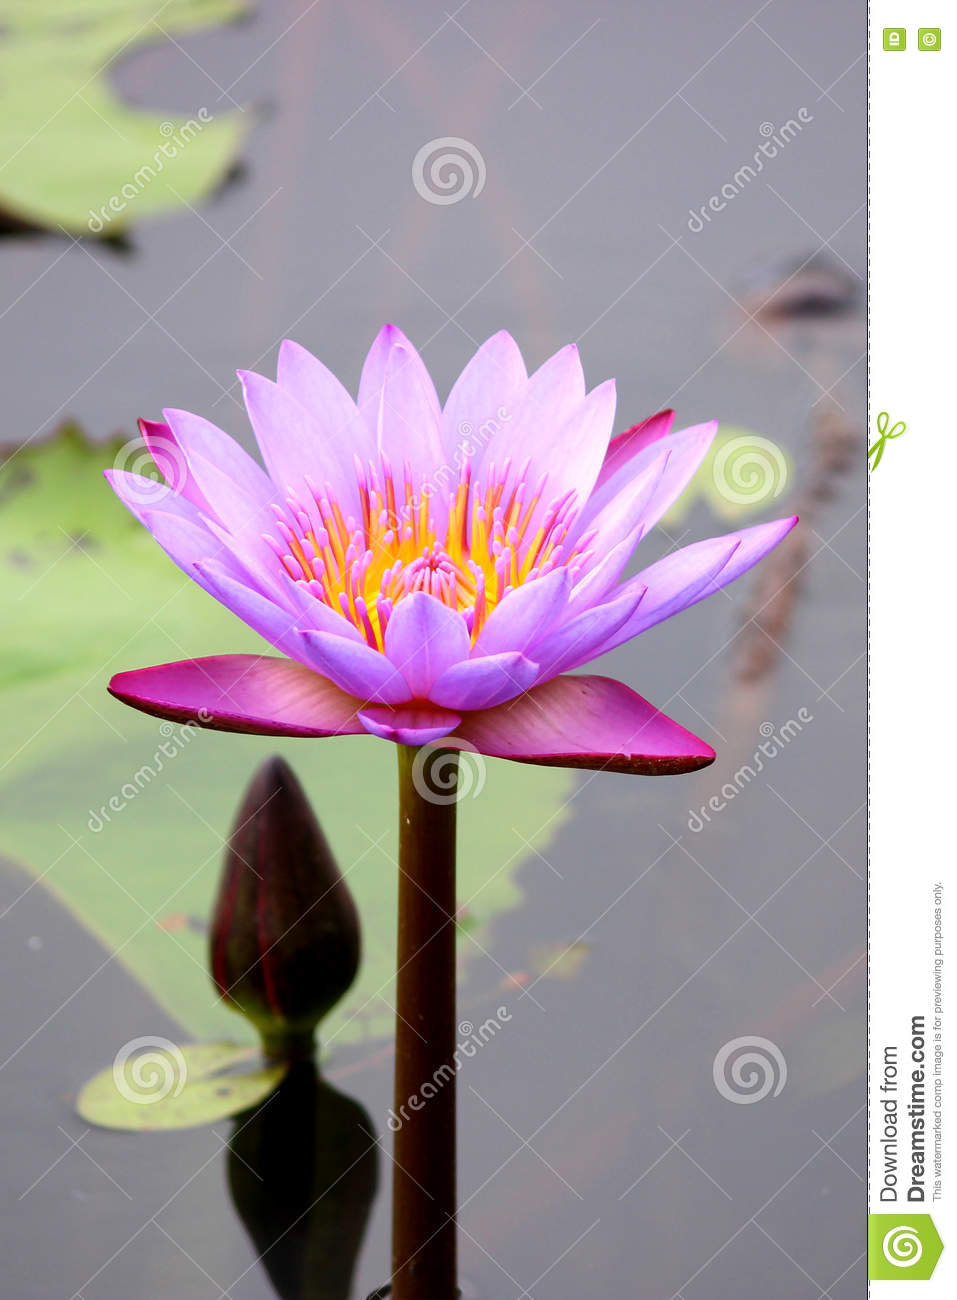 Lotus Flower Stock Photo Image Of India Edible Countries 75238064